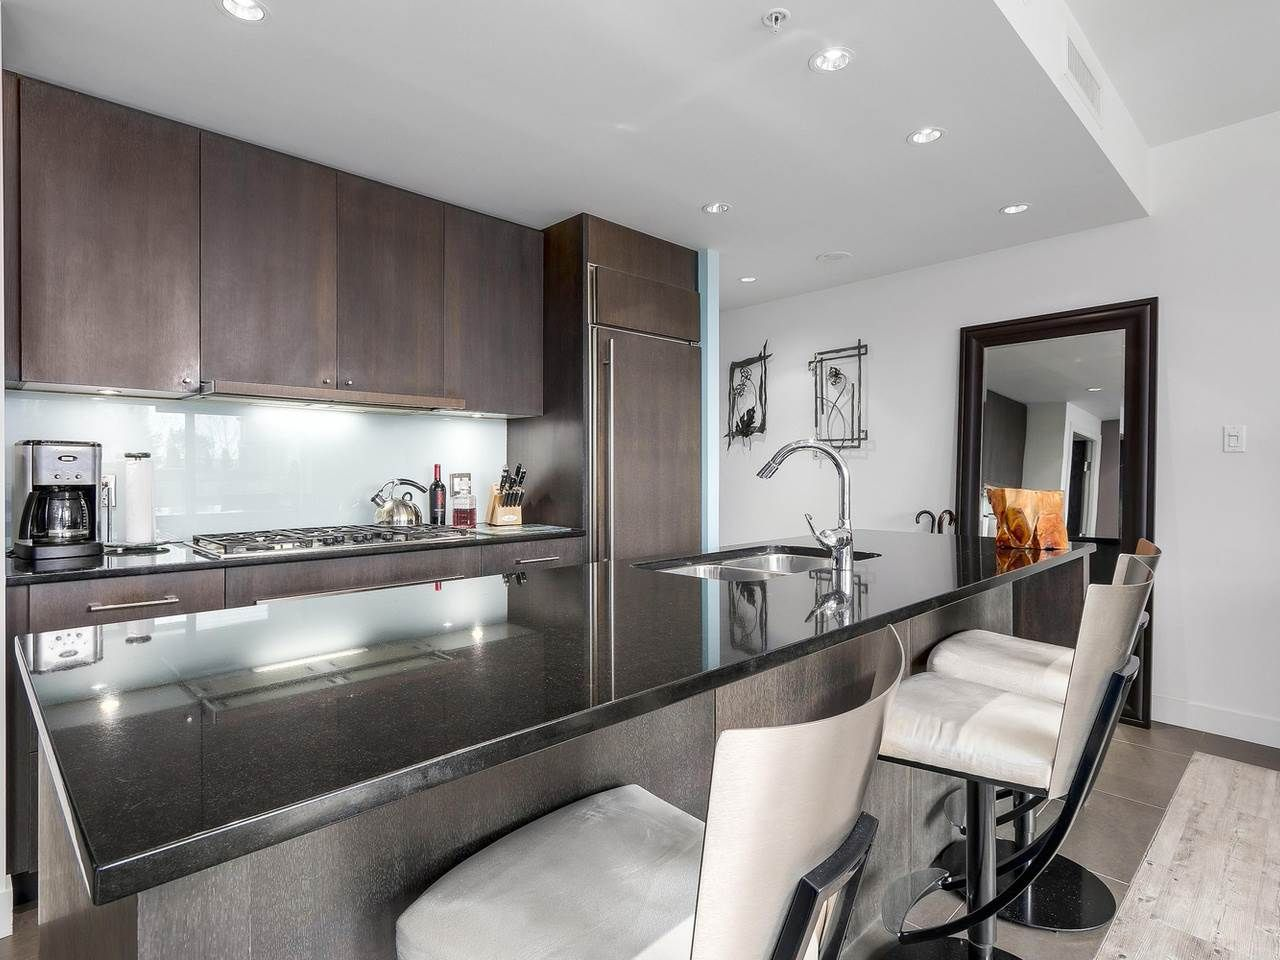 Photo 7: Photos: 401 1455 HOWE STREET in Vancouver: Yaletown Condo for sale (Vancouver West)  : MLS®# R2145939